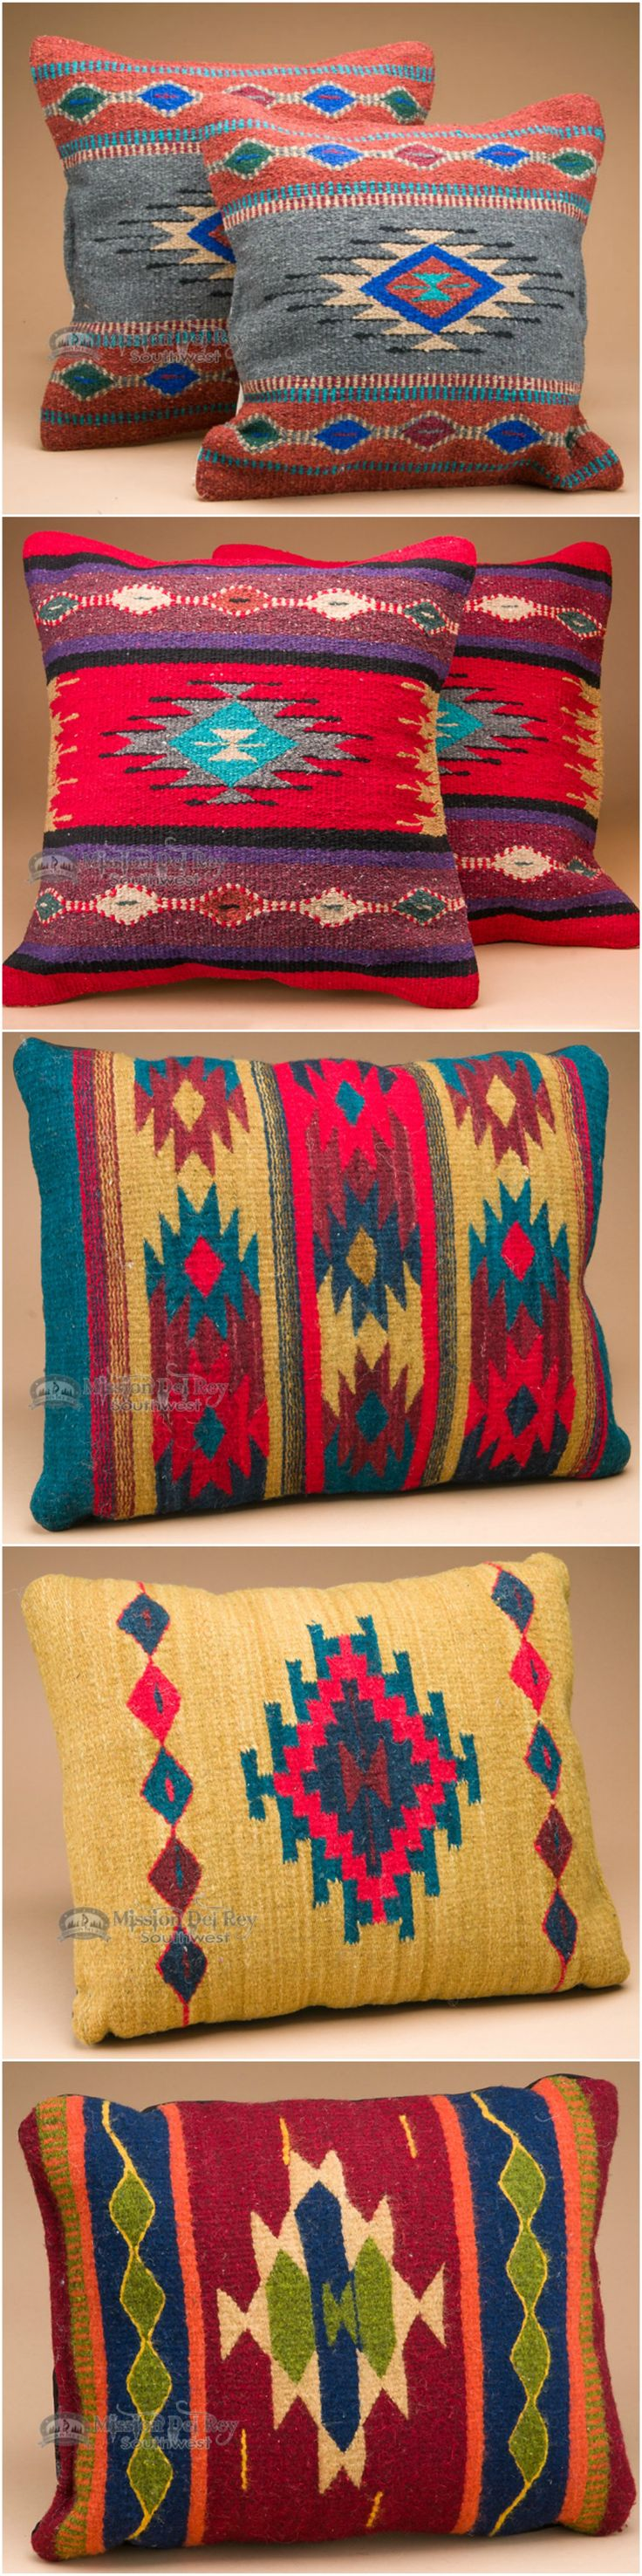 If you like southwest style and rustic decor, you will love the designs and colors of our southwest pillows. Rustic couch pillows are a great way to match western decor or Santa Fe style, and for adding some color to your rustic home decor. Check out our